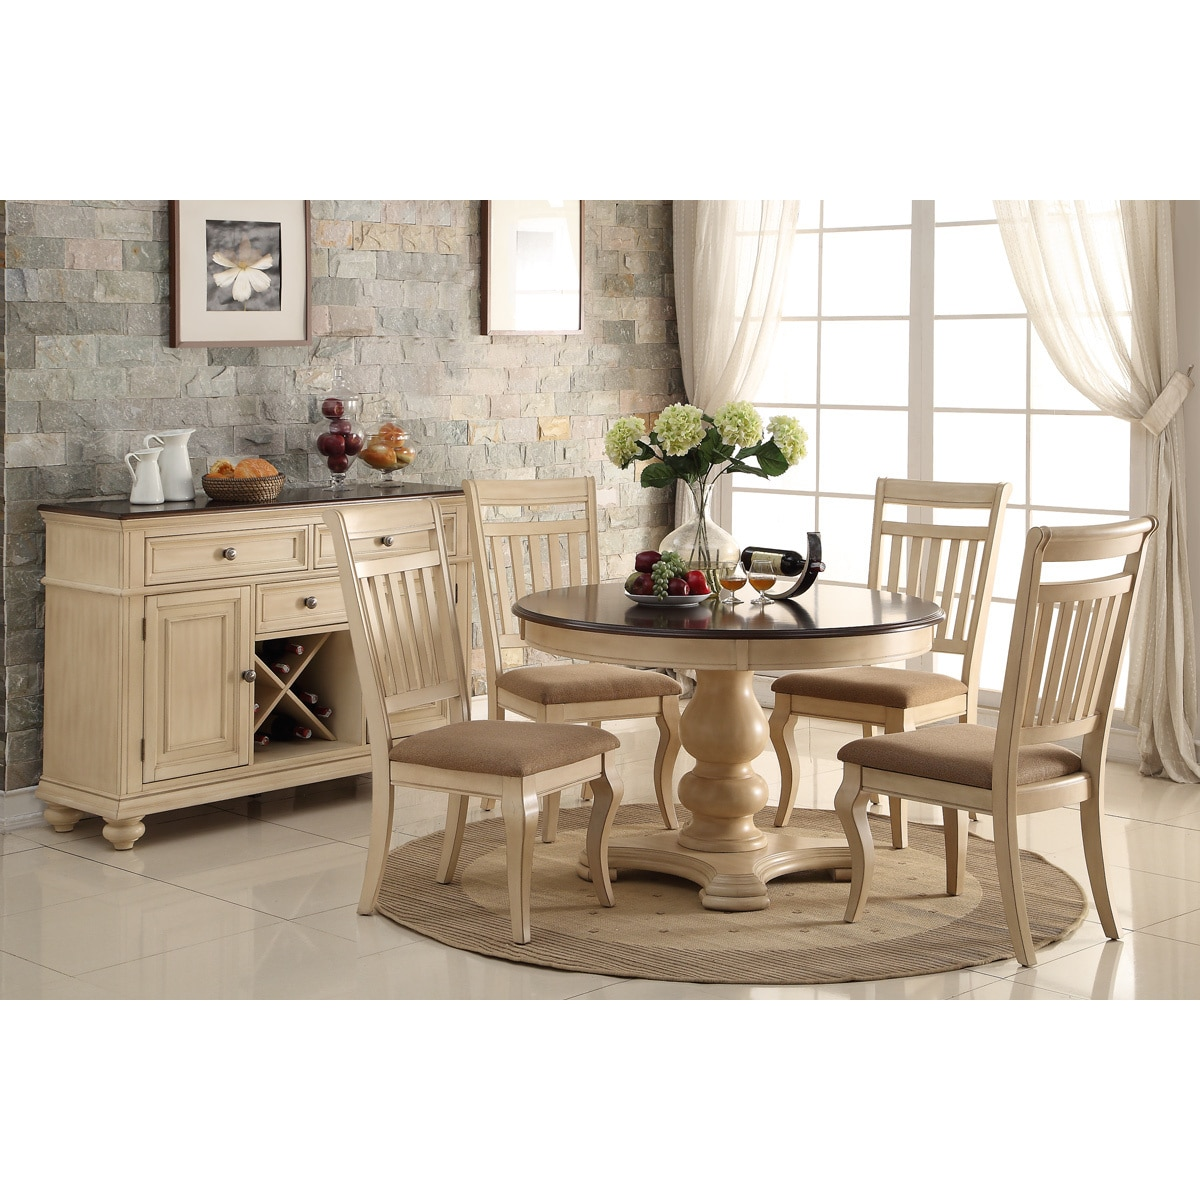 Shop Great Barrington Dining Set Free